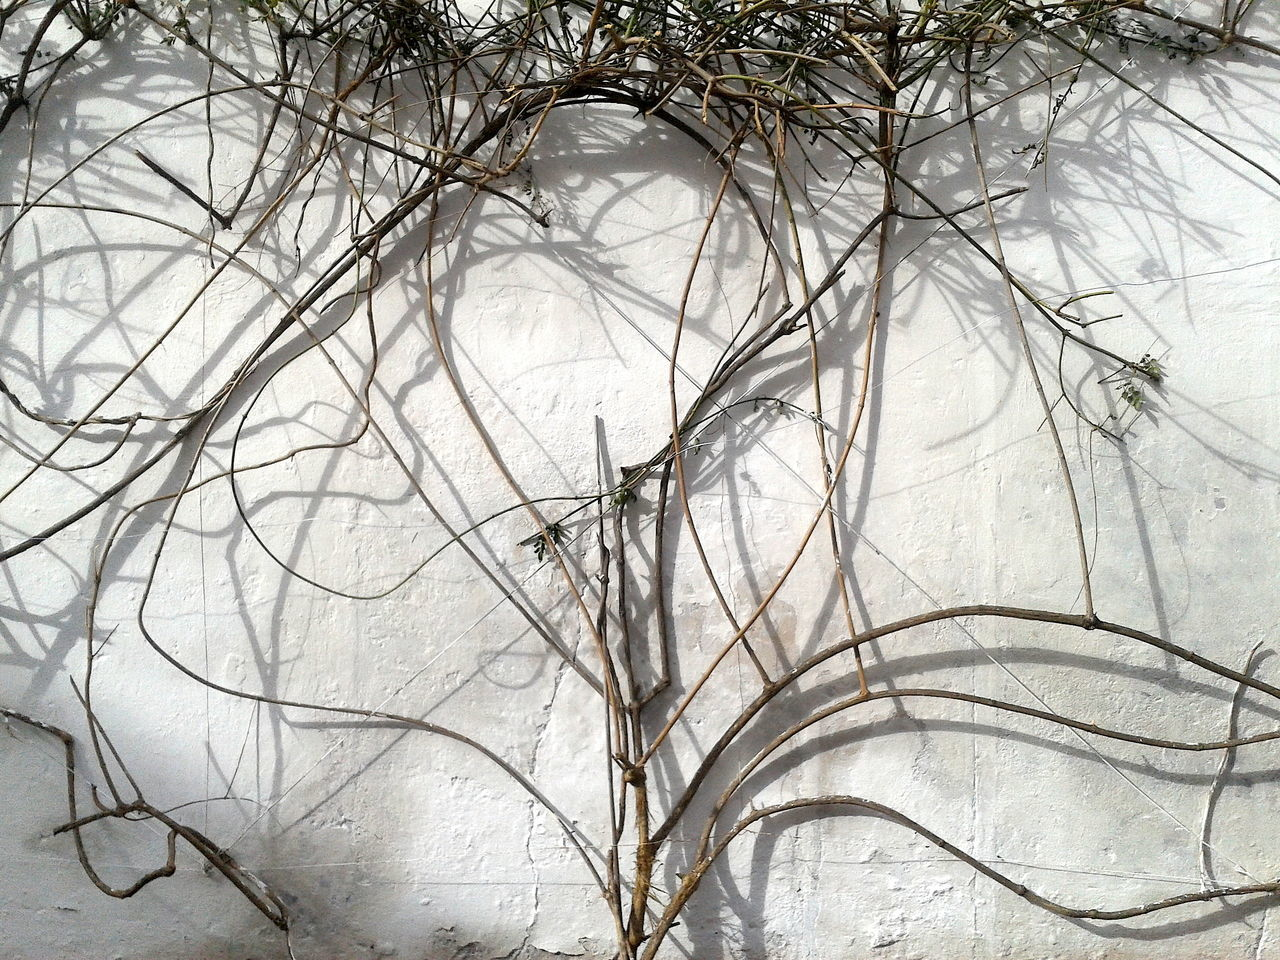 tree, bare tree, branch, no people, backgrounds, marble, winter, nature, snow, close-up, day, beauty in nature, indoors